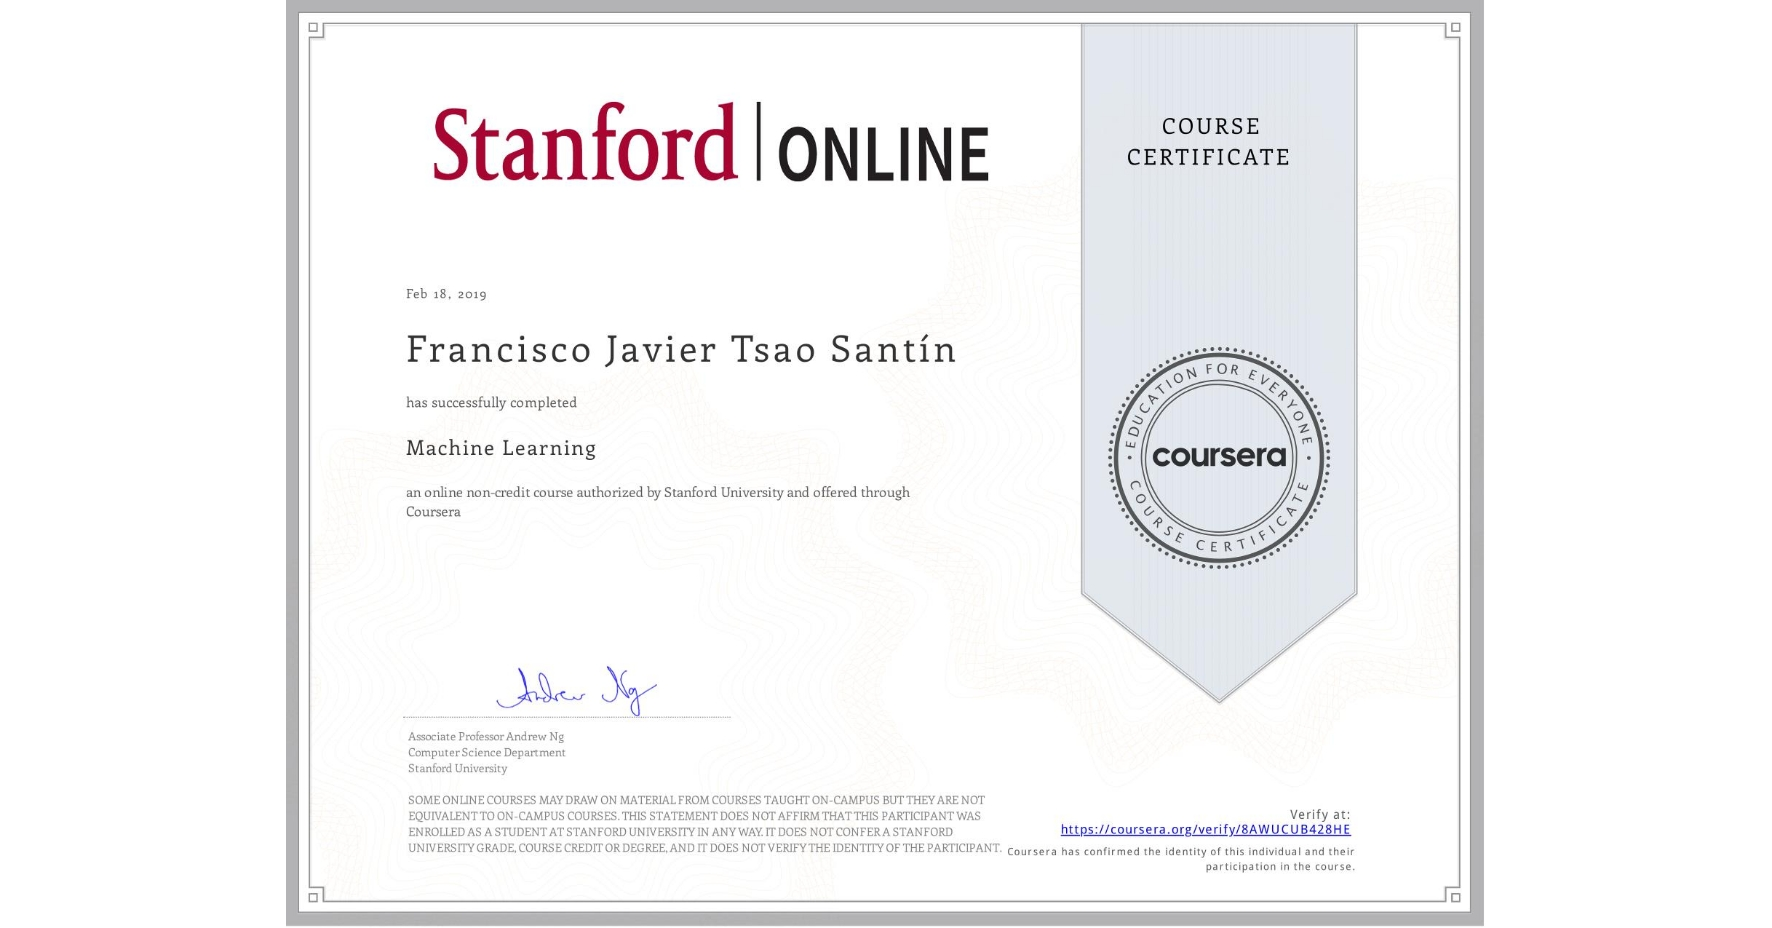 View certificate for Francisco Javier Tsao Santín, Machine Learning, an online non-credit course authorized by Stanford University and offered through Coursera